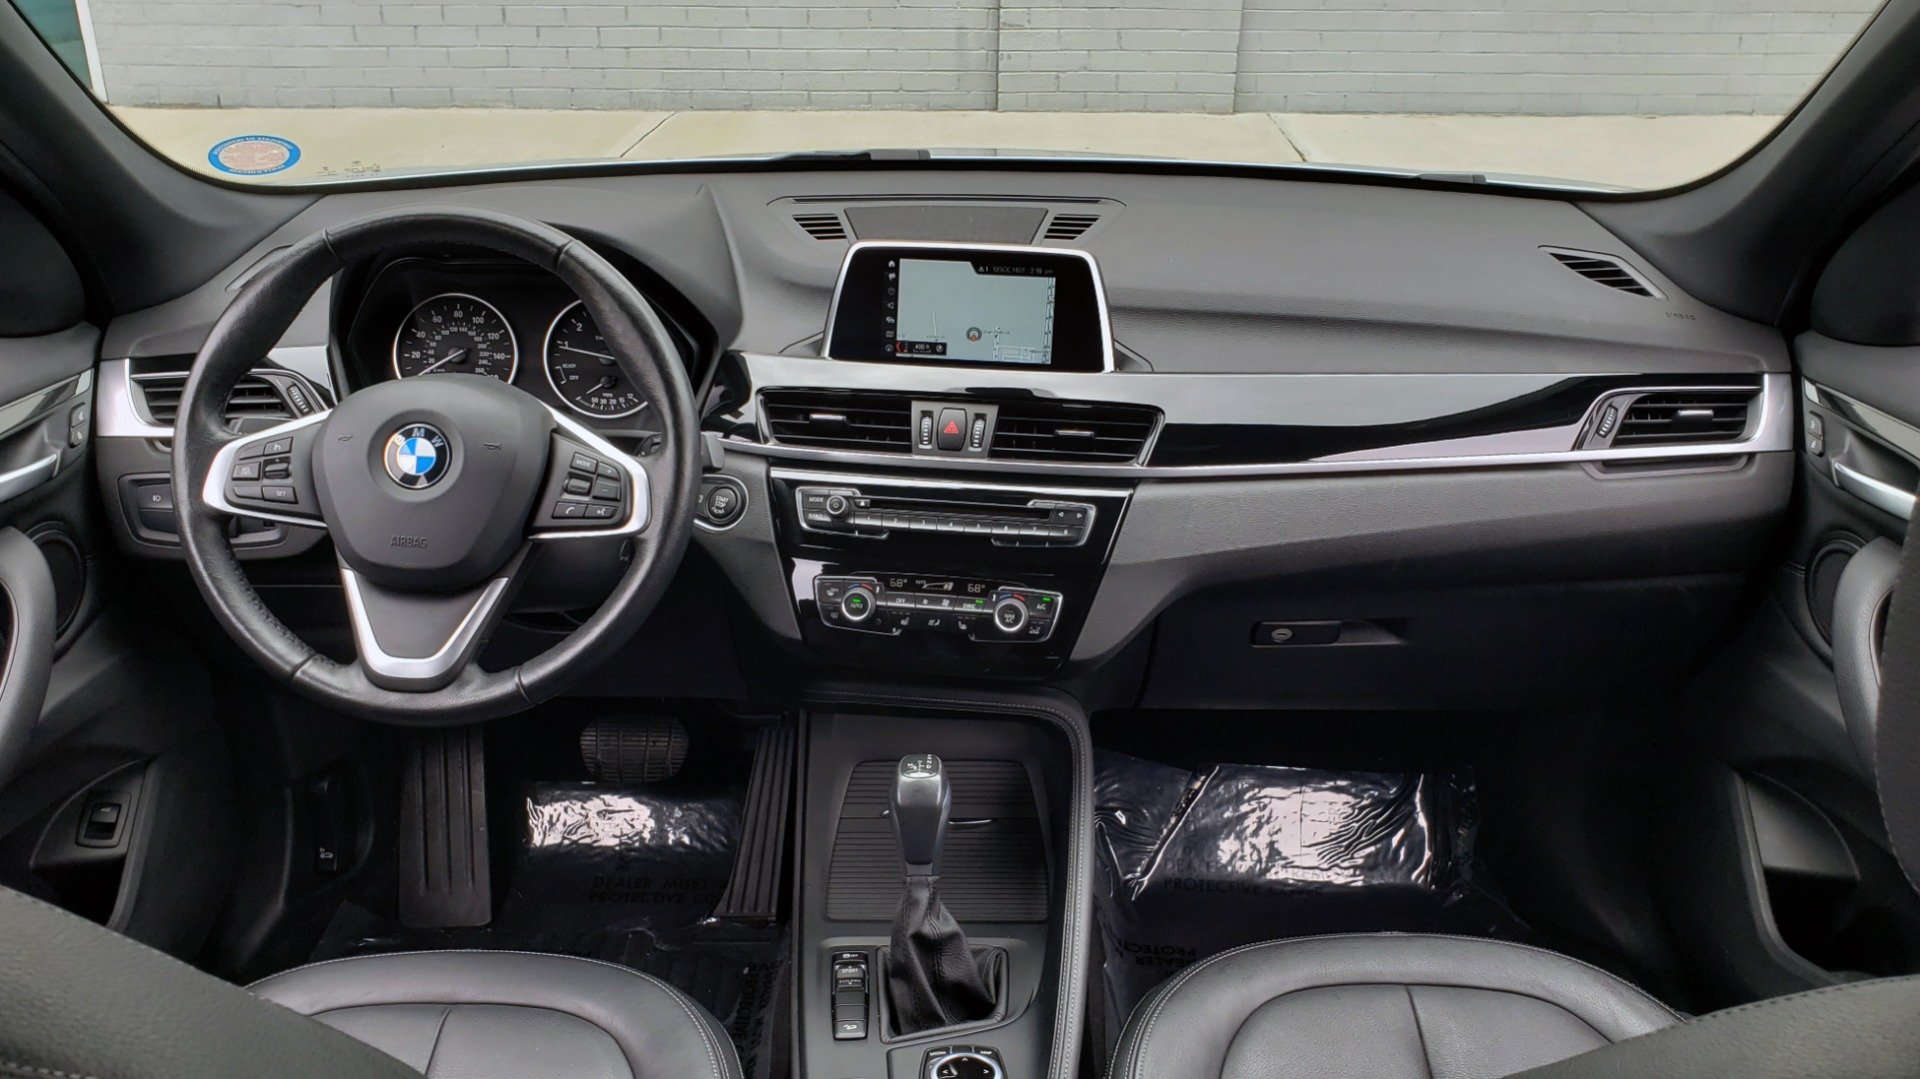 Used 2018 BMW X1 XDRIVE38I / NAV / CONV PKG / PANO-ROOF / HTD STS / REARVIEW for sale $28,995 at Formula Imports in Charlotte NC 28227 70